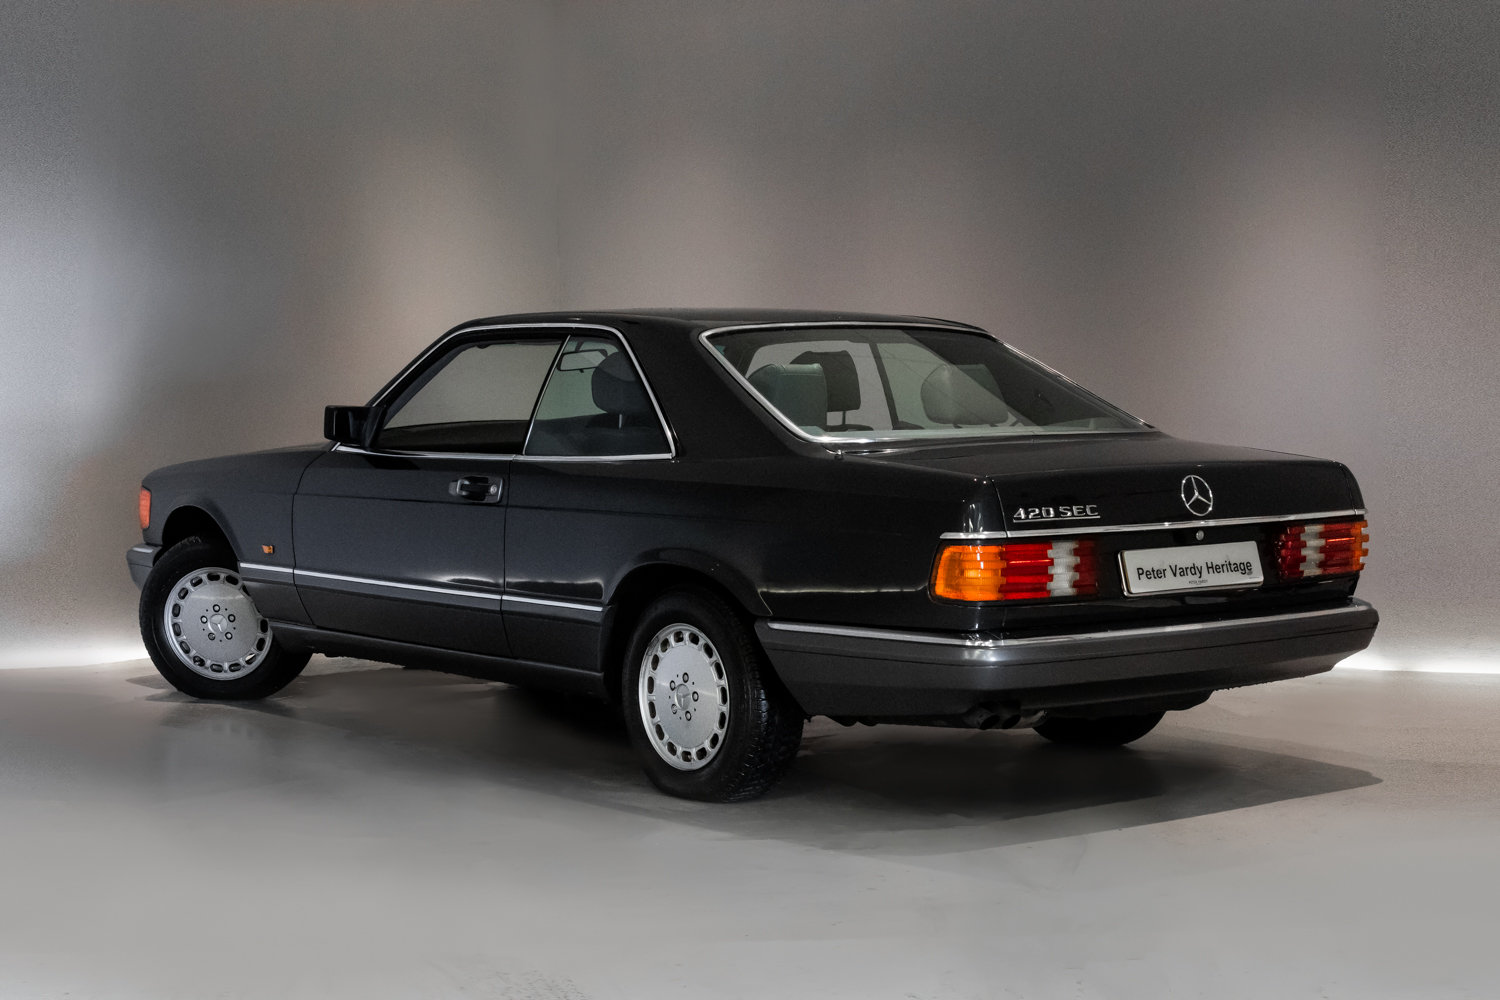 1990 *LOW MILES-THE BEST AVAILABLE* For Sale (picture 2 of 12)